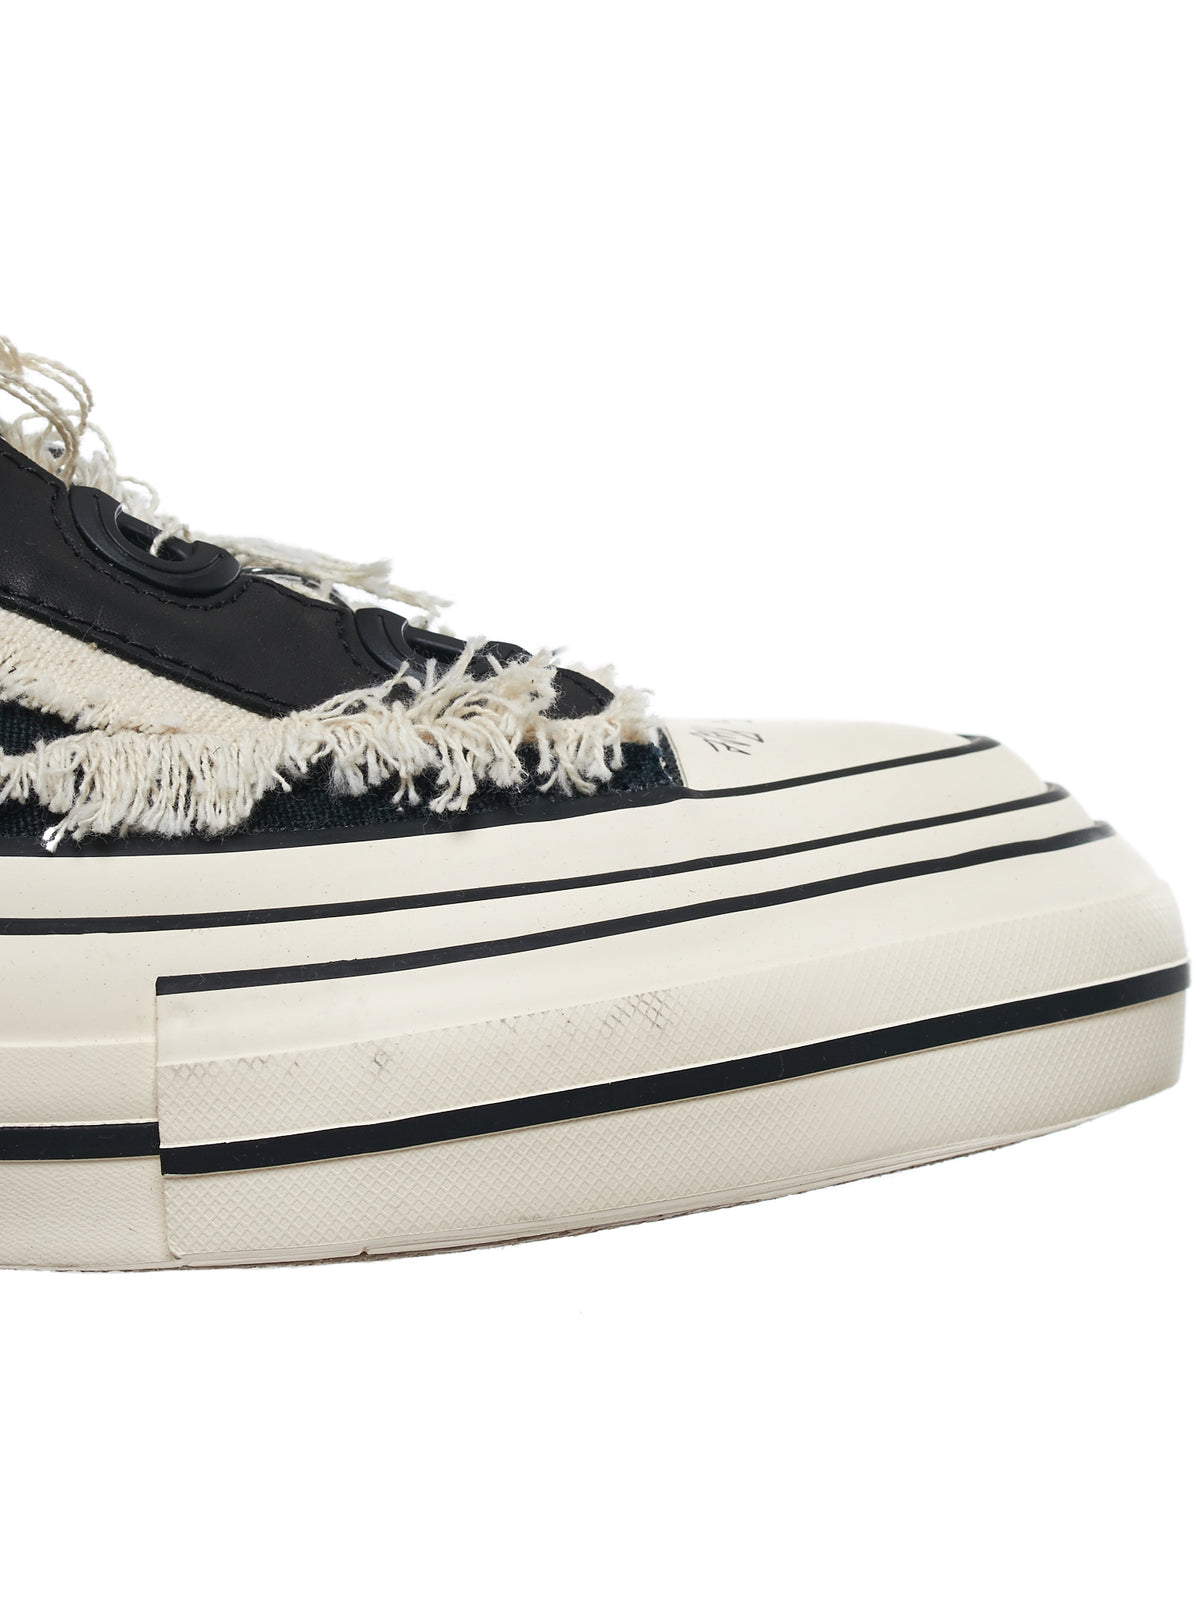 Patchwork Platform Sole Sneakers (FN-E01-060-BLACK-WHITE)